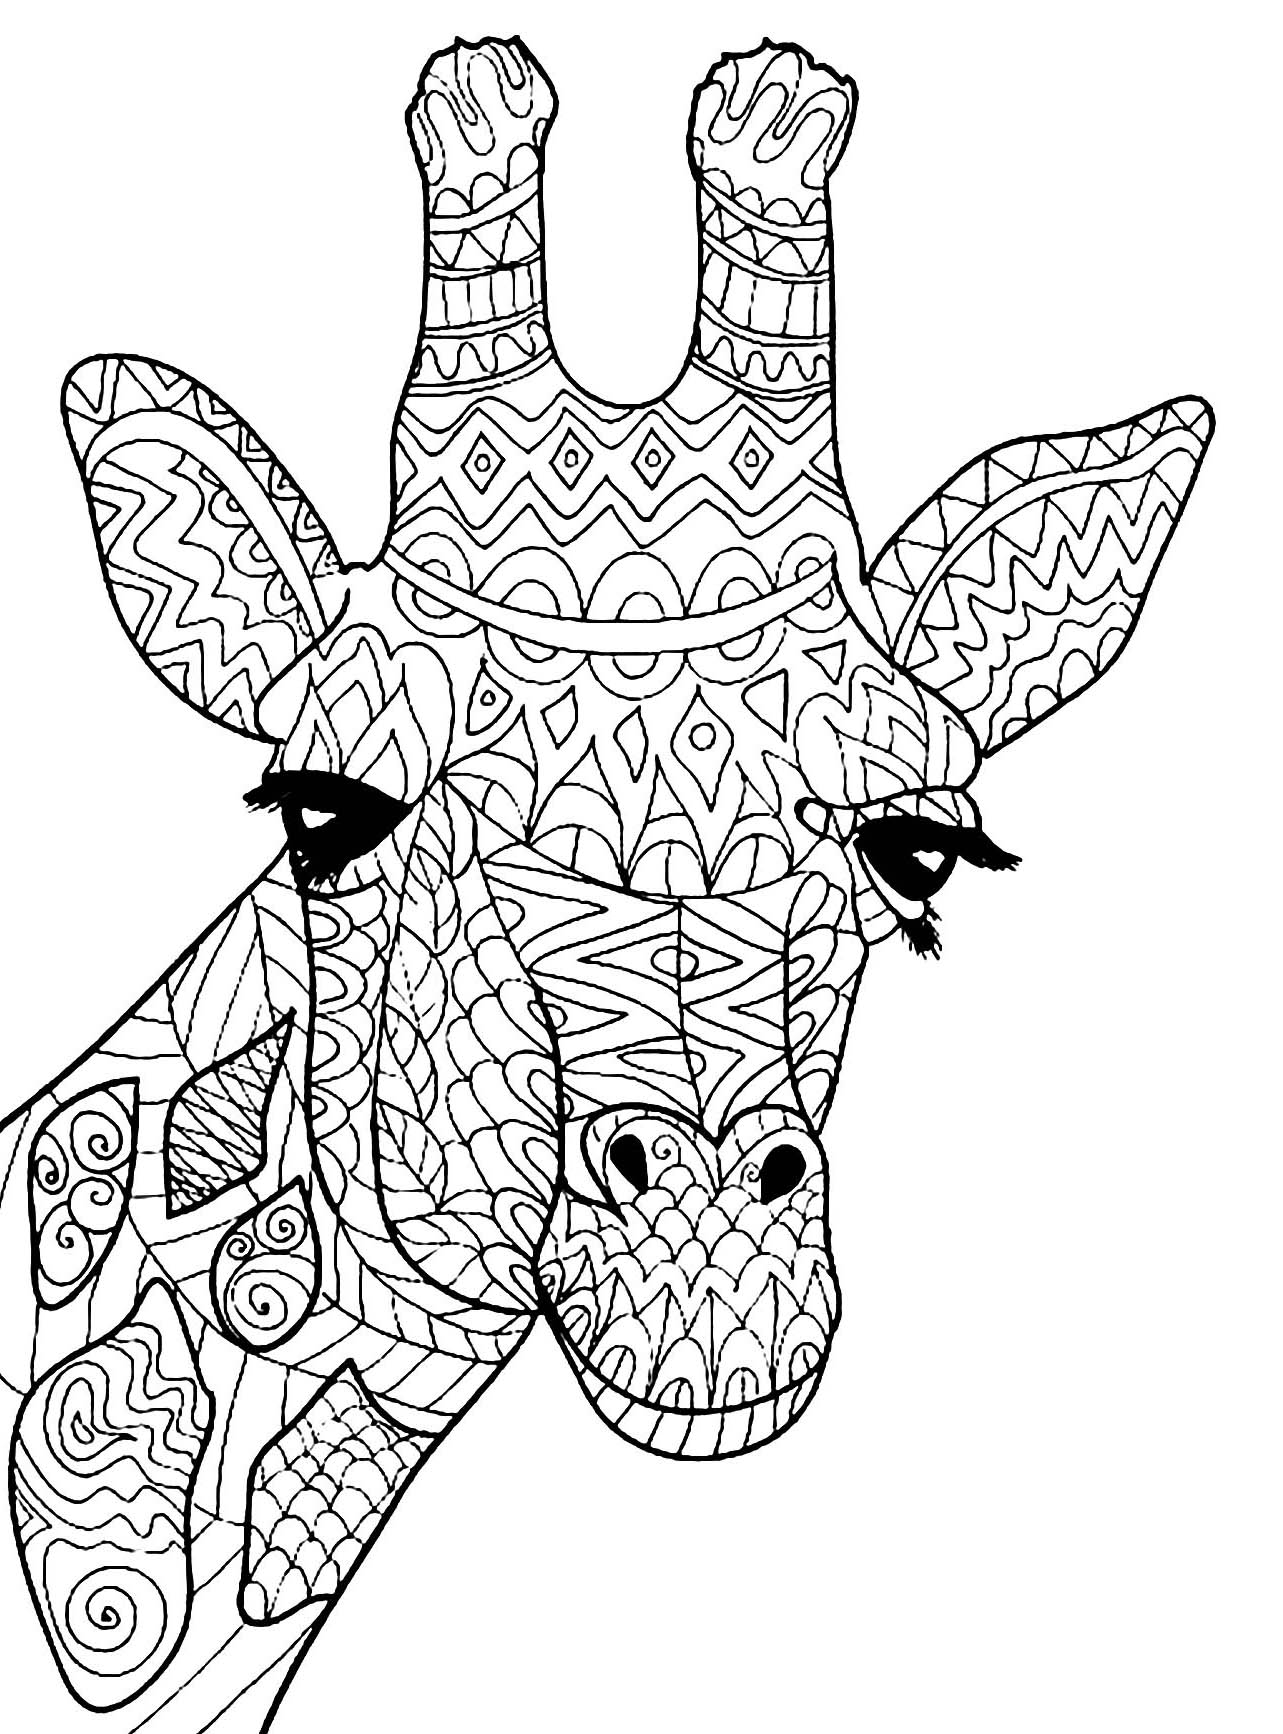 colouring pages of giraffe print download giraffe coloring pages for kids to have fun giraffe pages colouring of 1 1